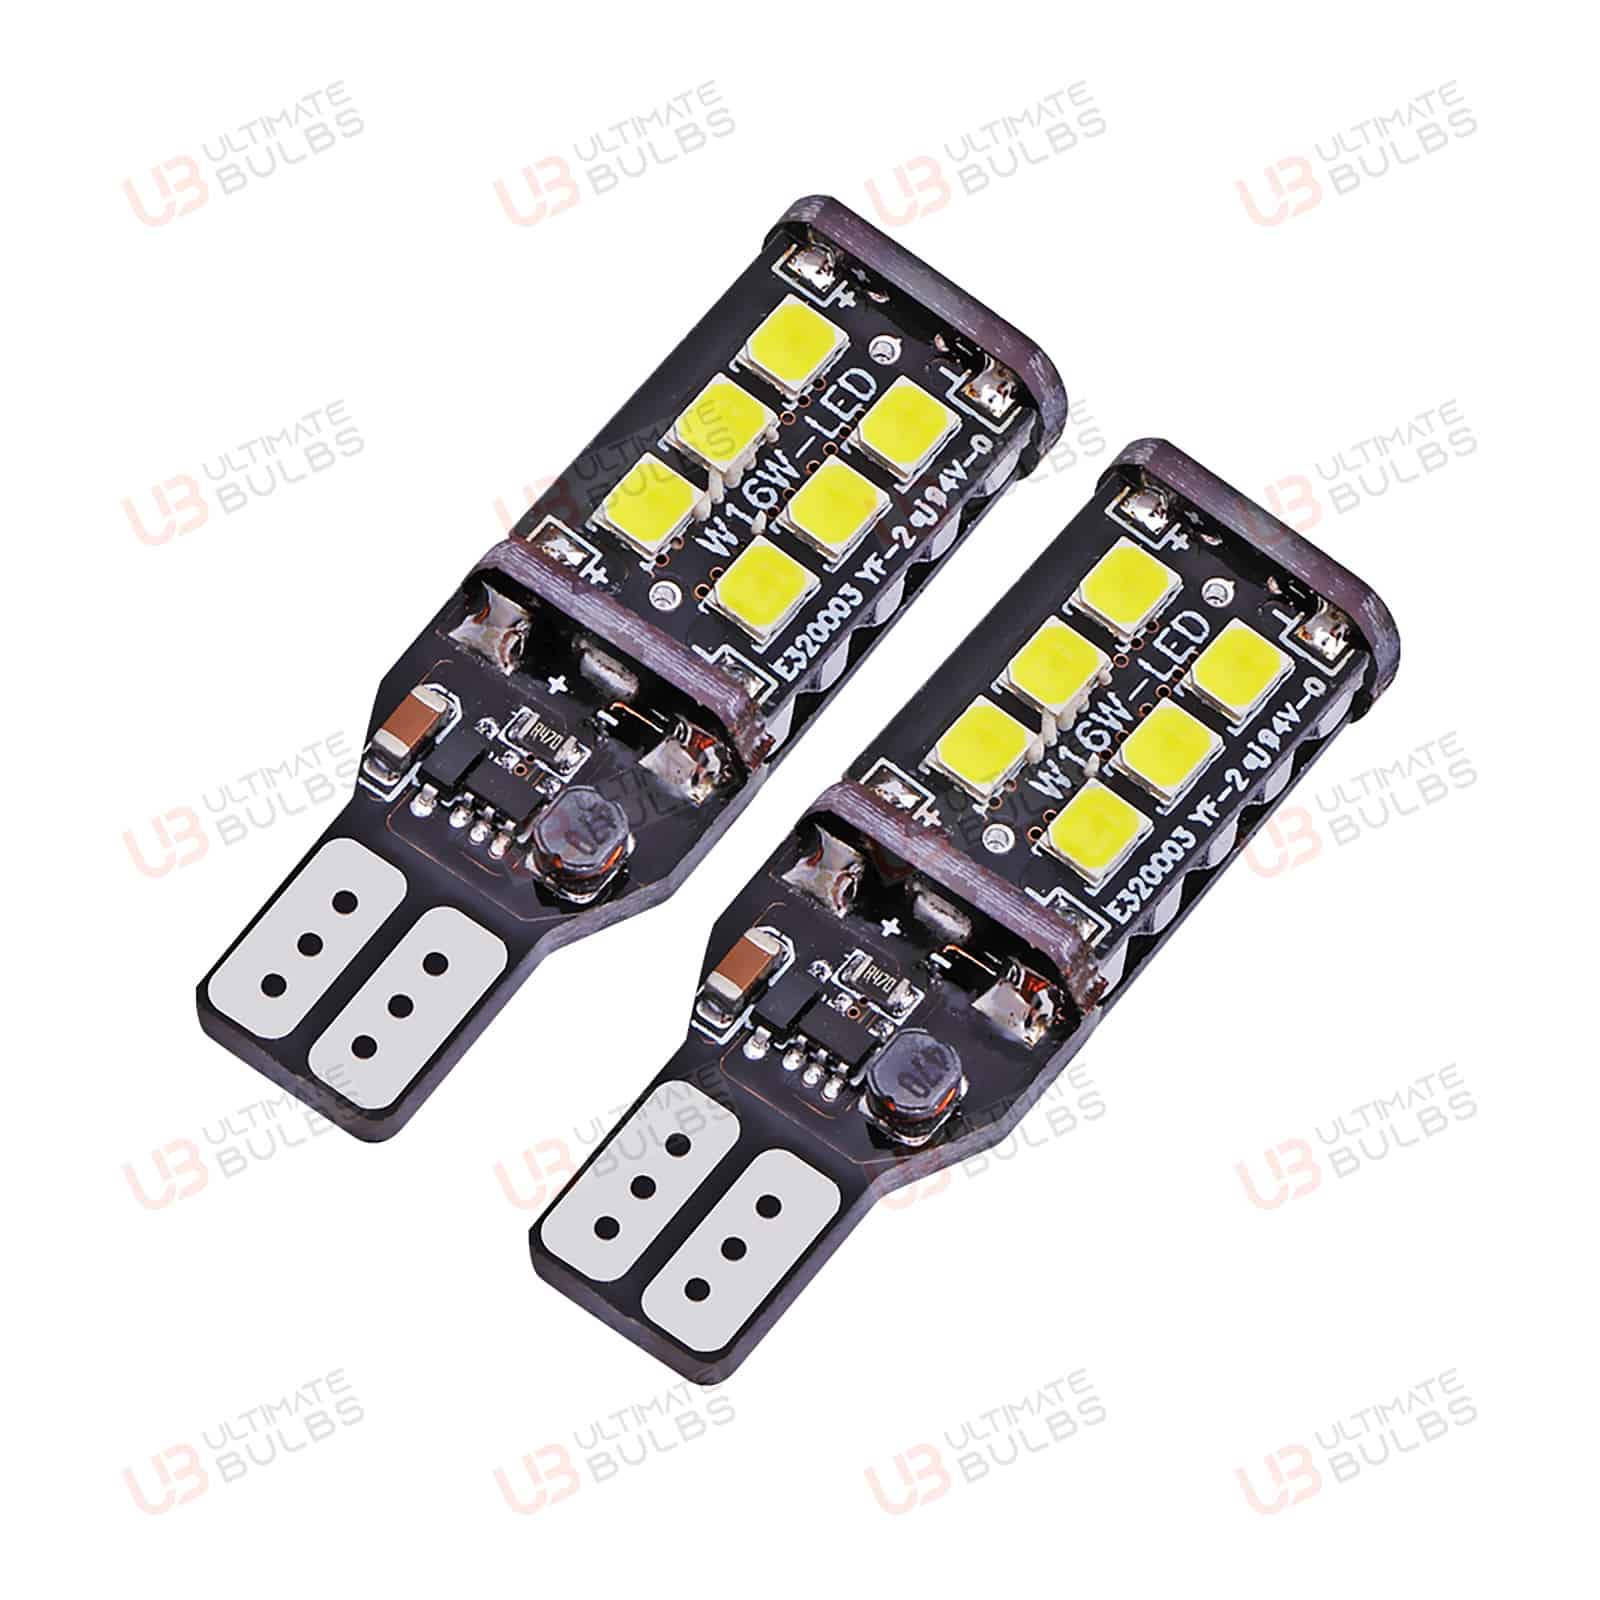 Bright White Xenon LED SMD Canbus Reverse Lights UK Stock Audi A4 B8 Avant